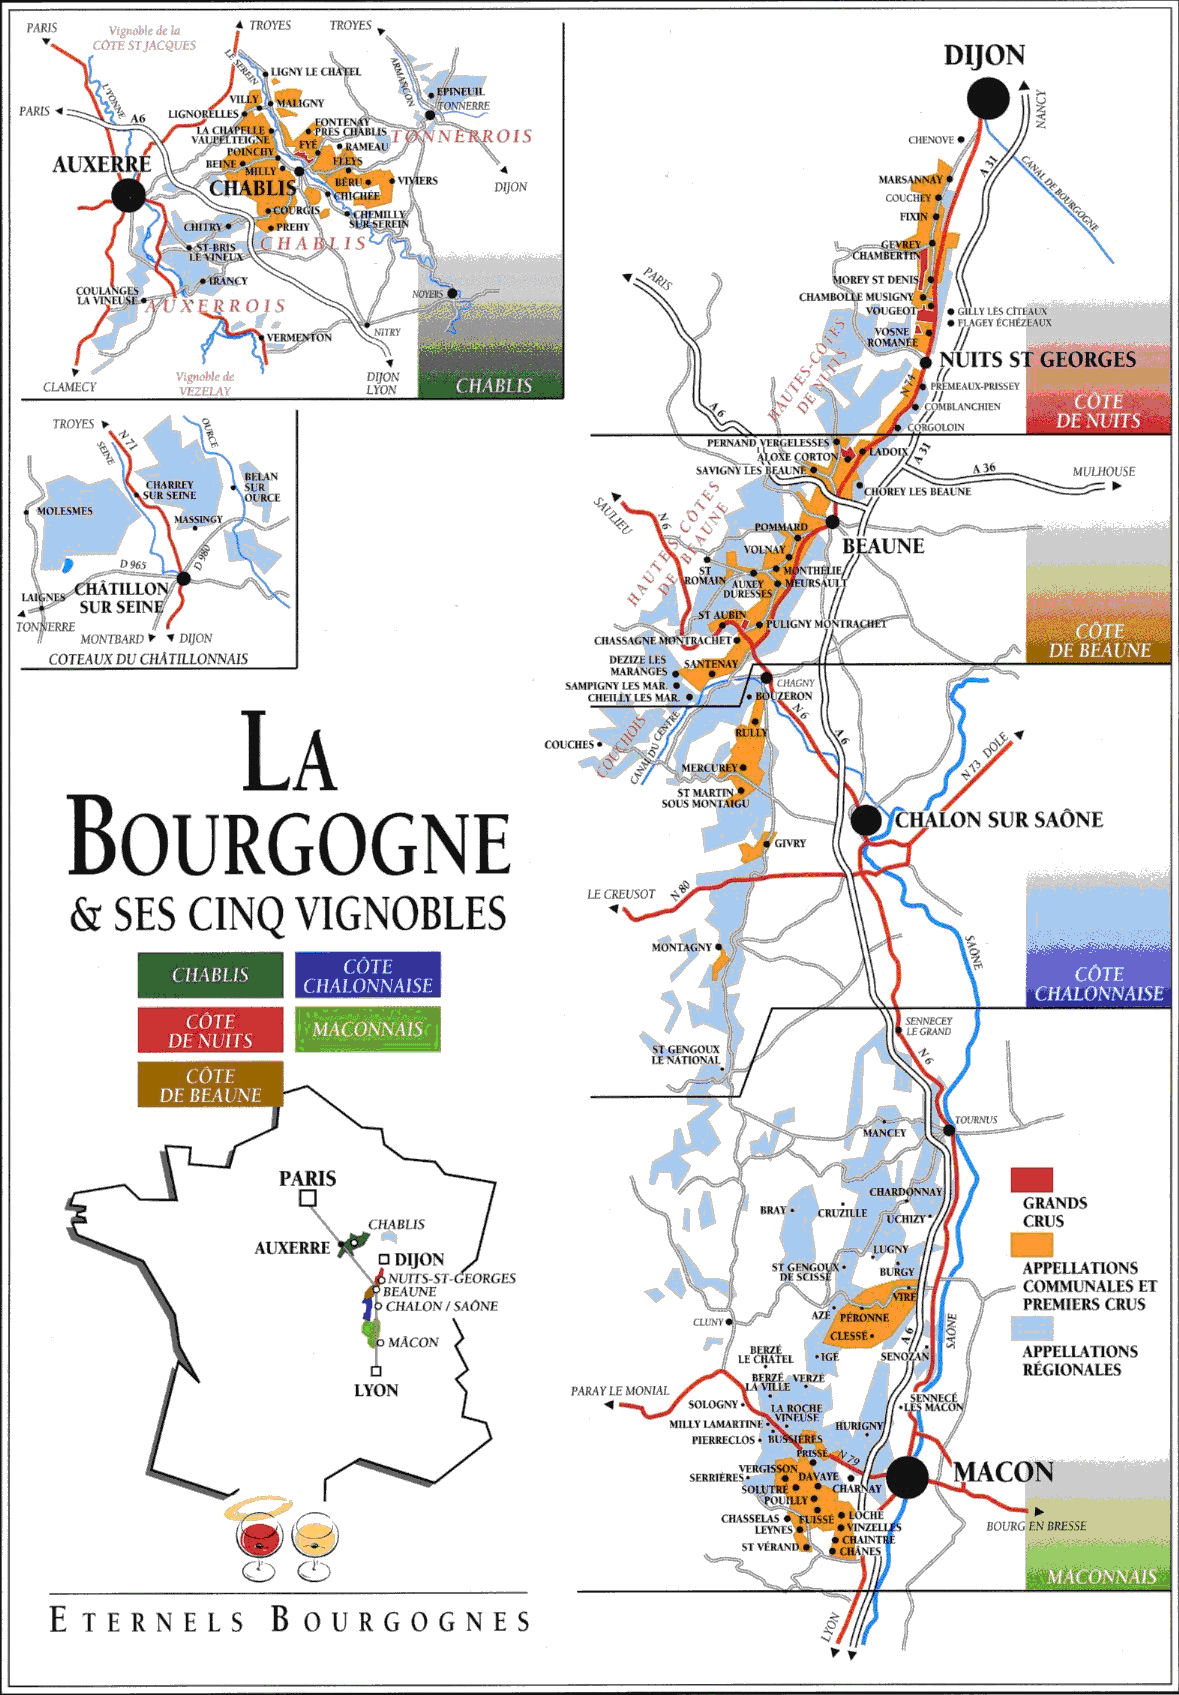 Districts Of France Map.Burgandy Region Wine Districts Map Dijon France Mappery